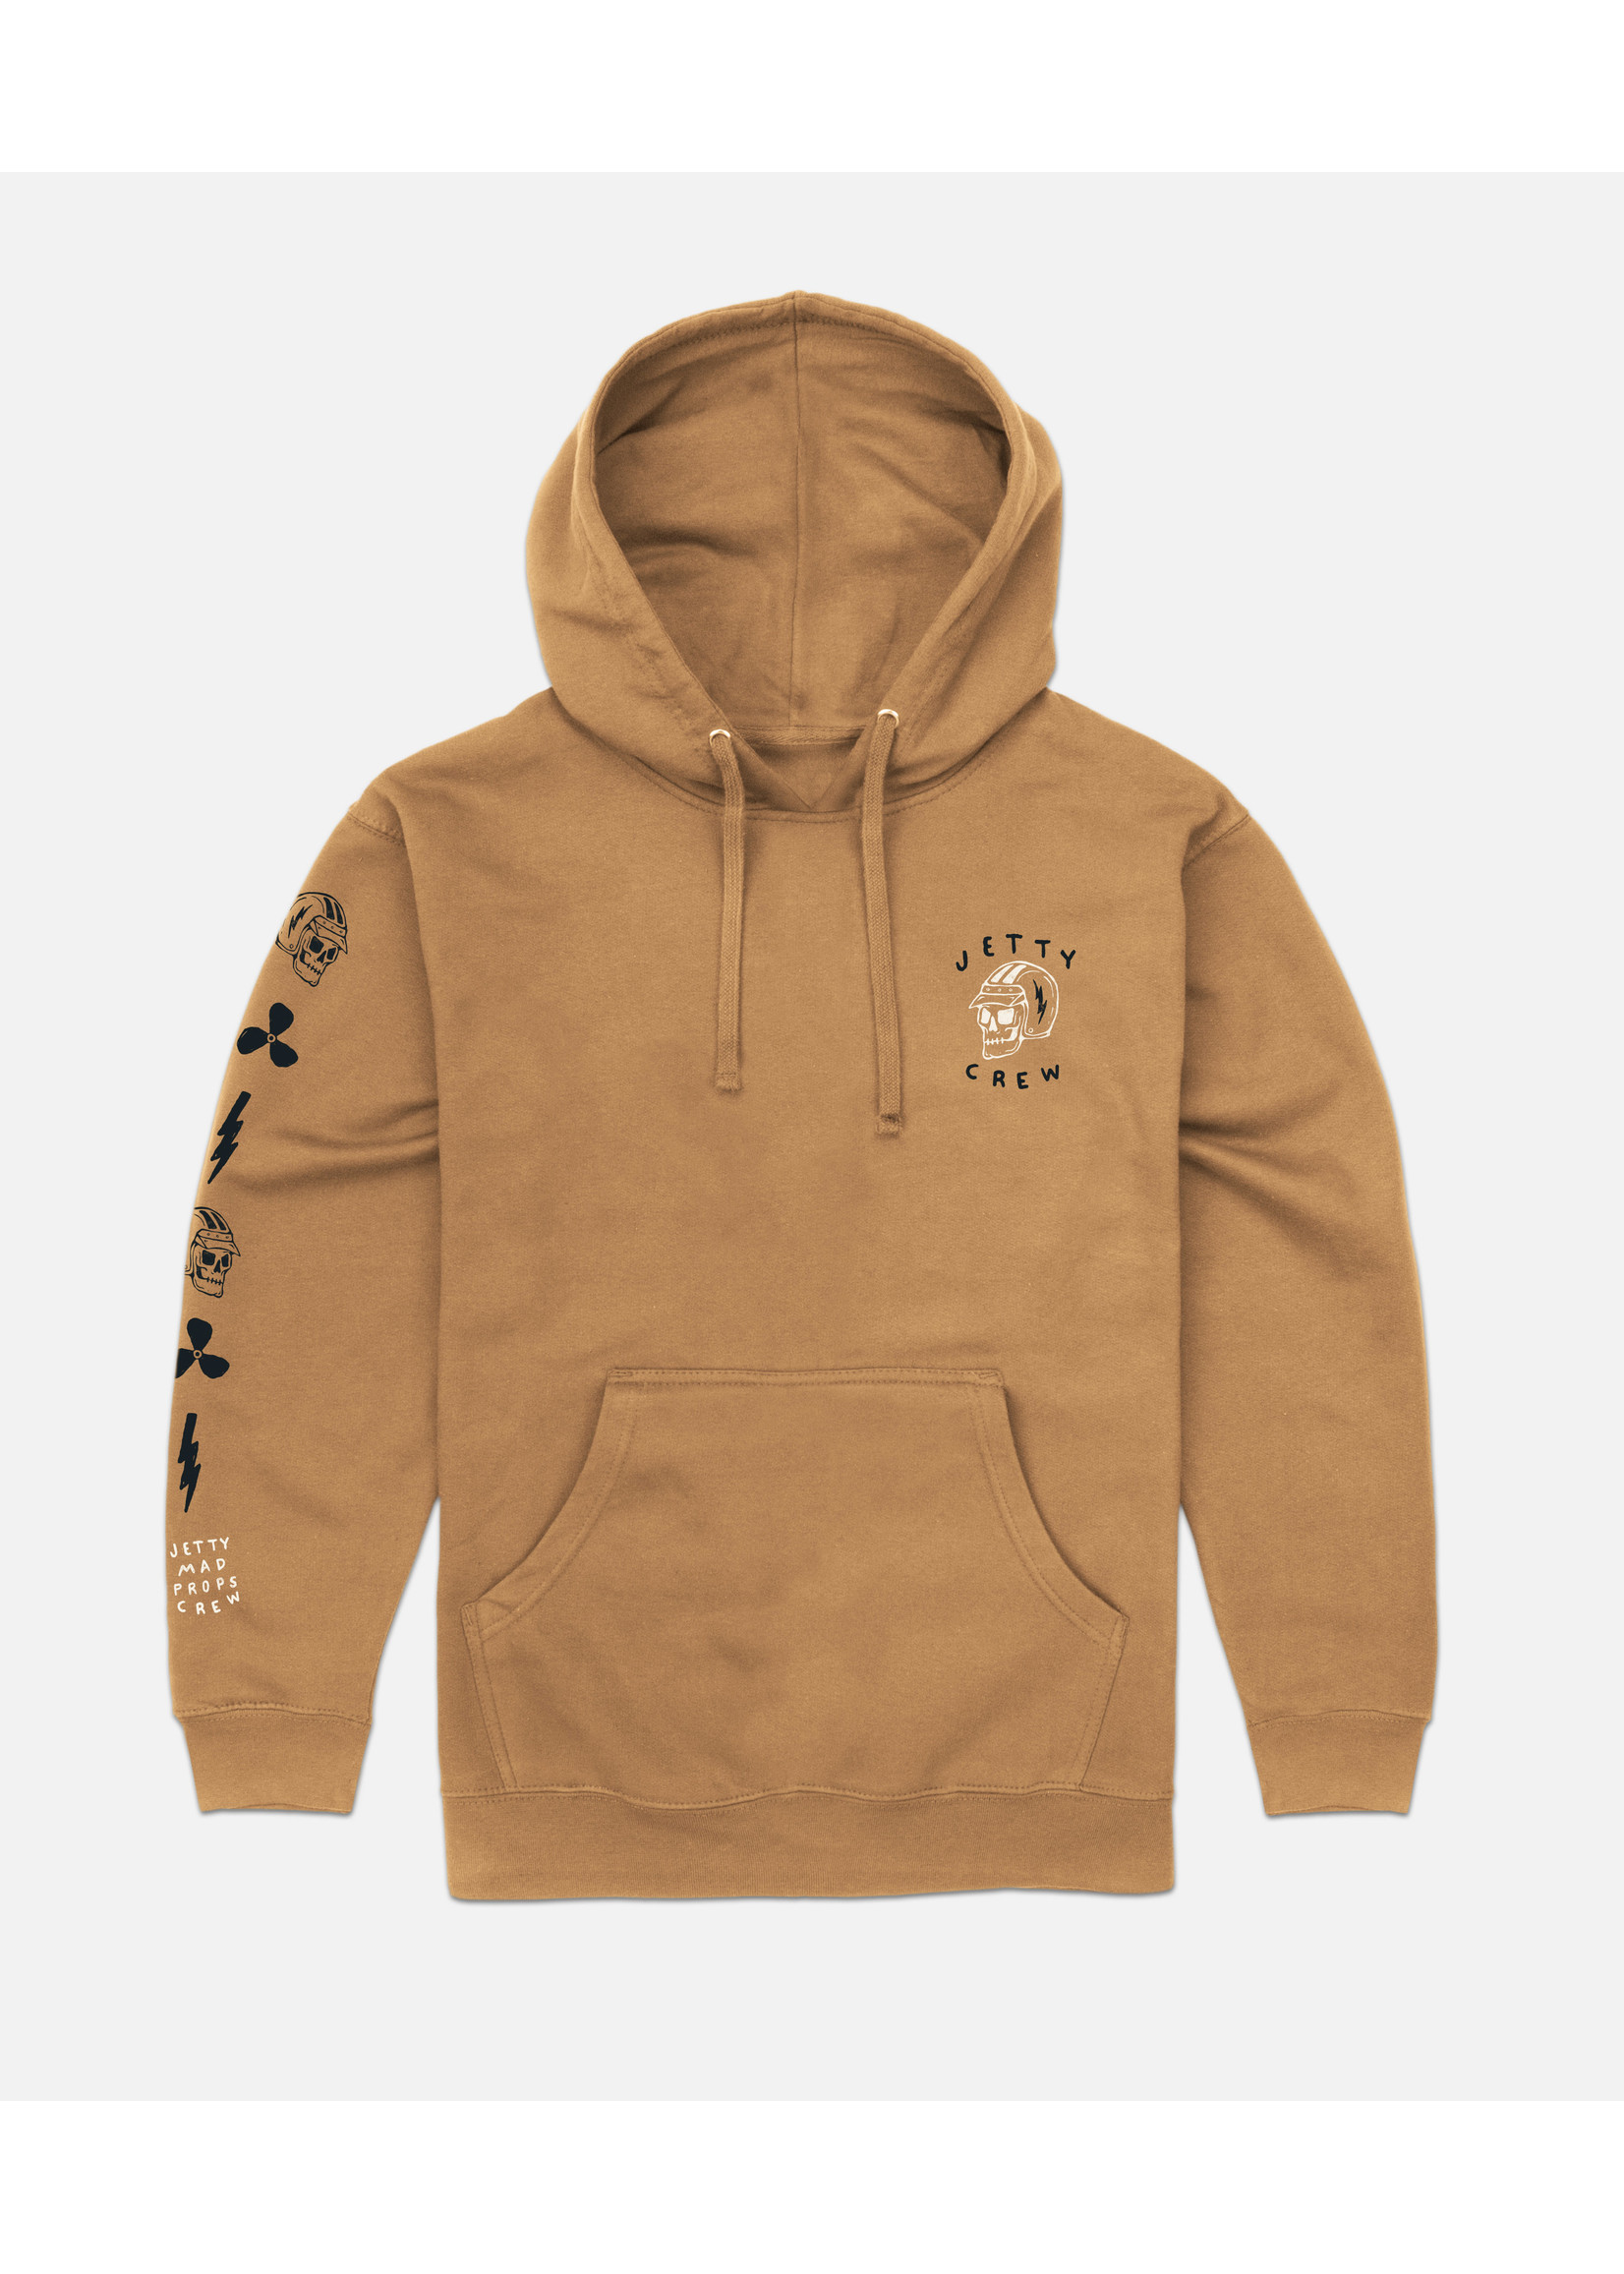 Jetty PROPSKULL PULLOVER HOODIE